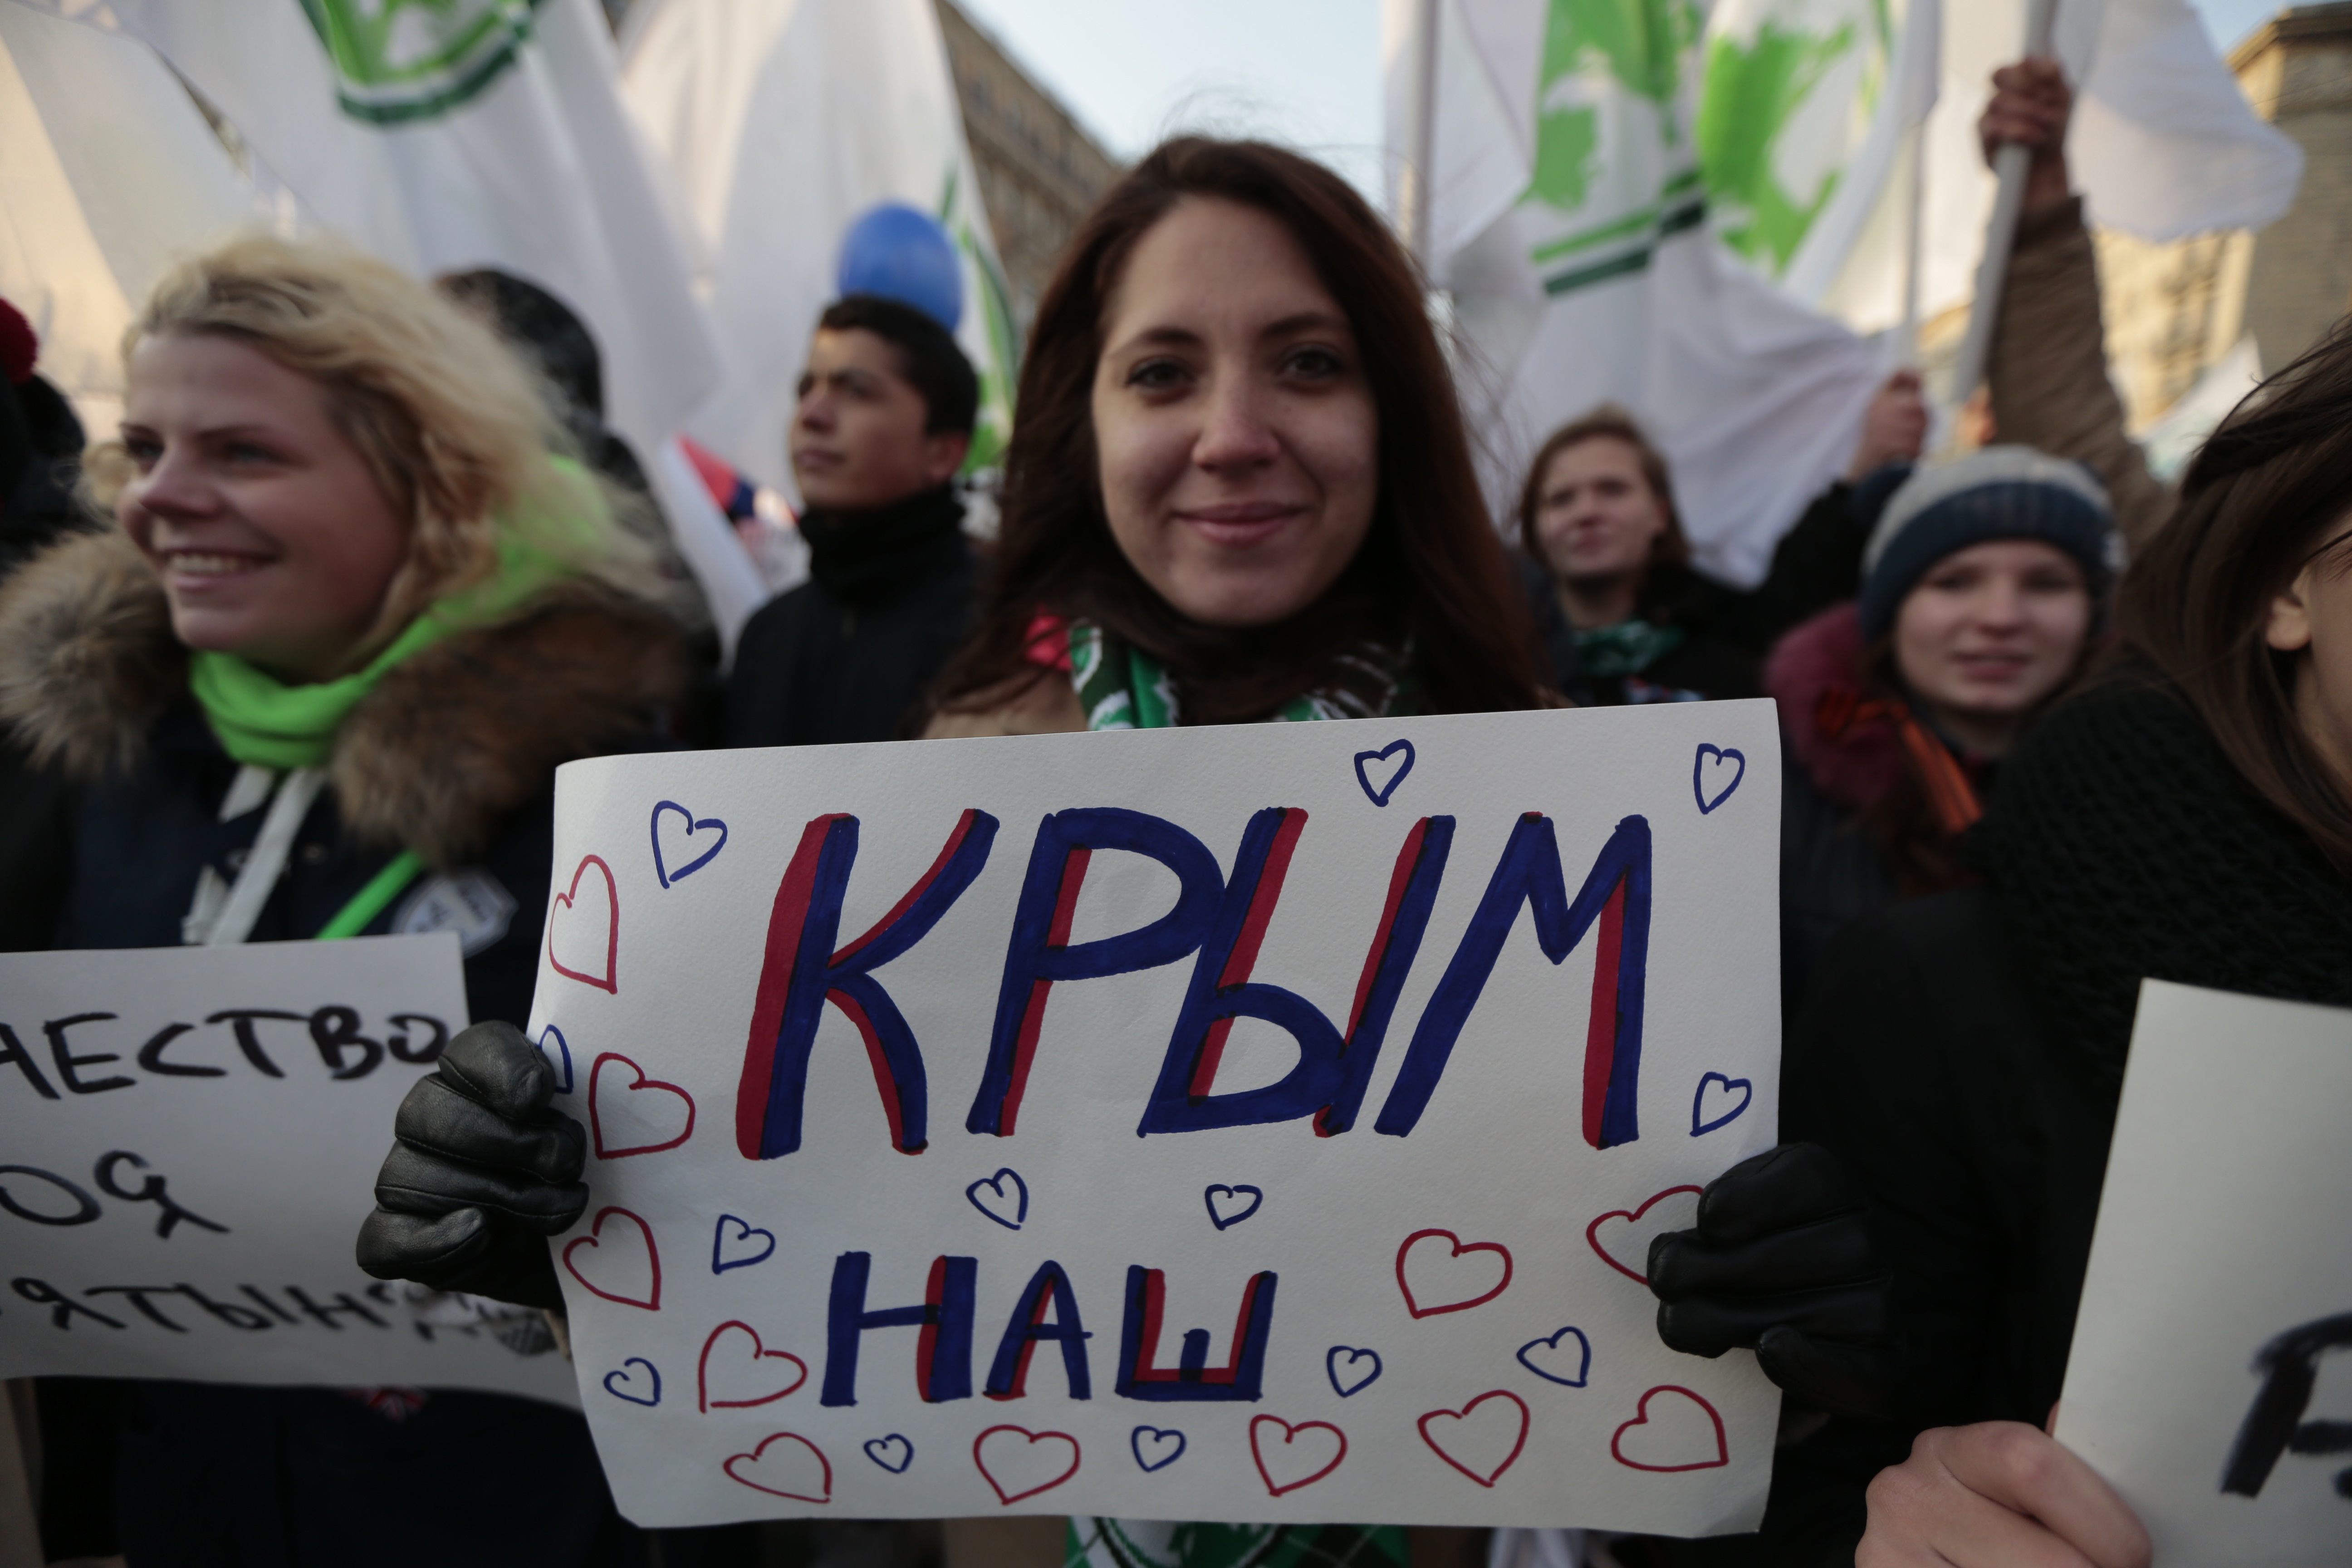 Russia People's Unity Day.